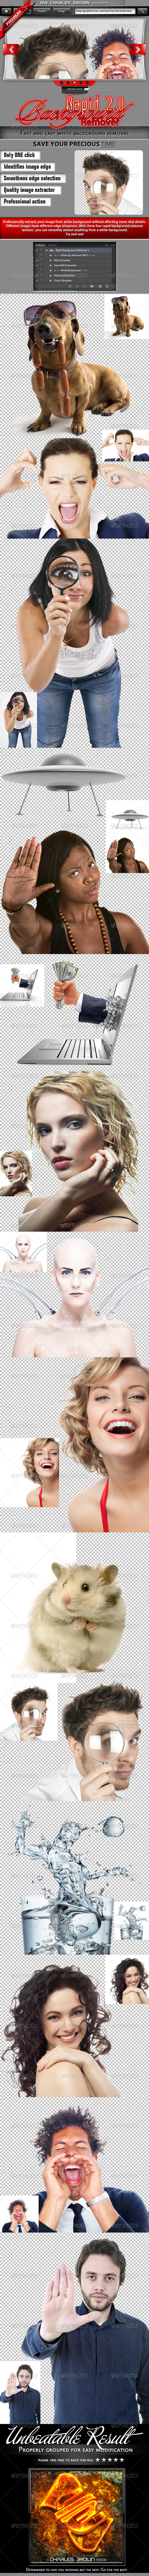 Rapid Background Remover 2 - Photo Effects Actions